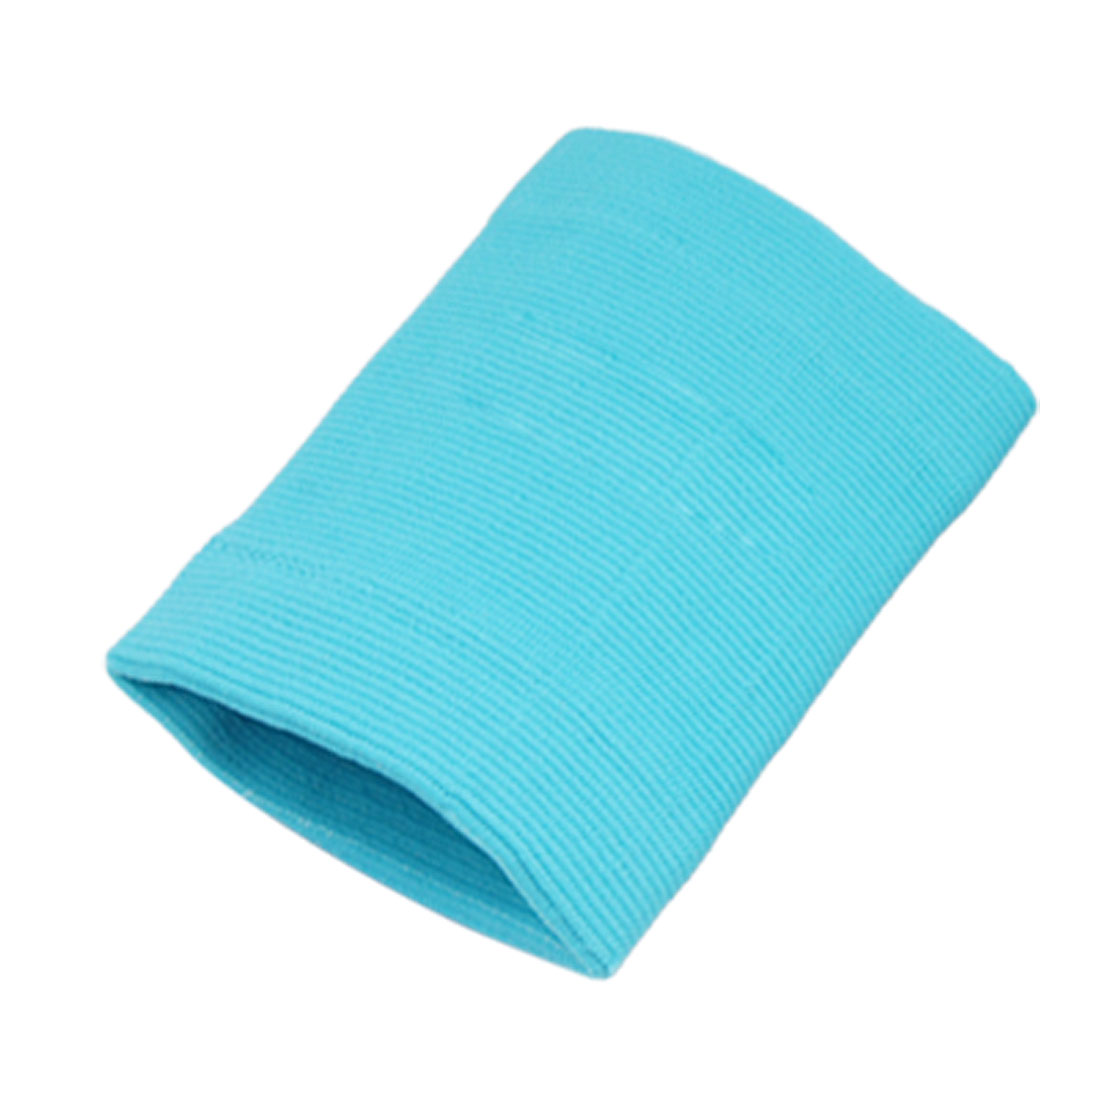 2 PCS Blue Elastic Wrist Support Protector Guard Wrapper